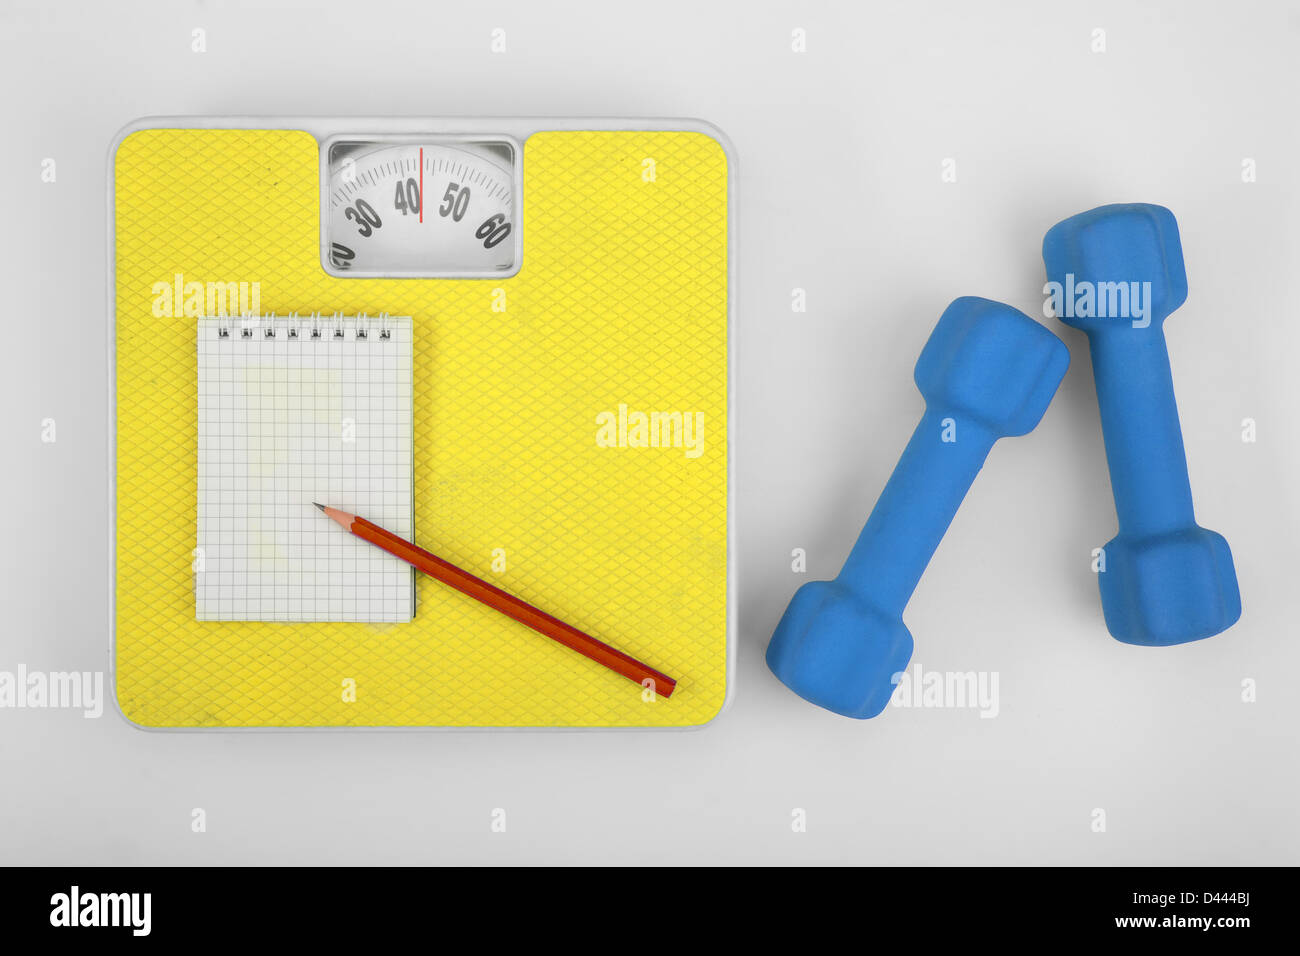 Scales, notebook with pencil and a dumbbell. - Stock Image